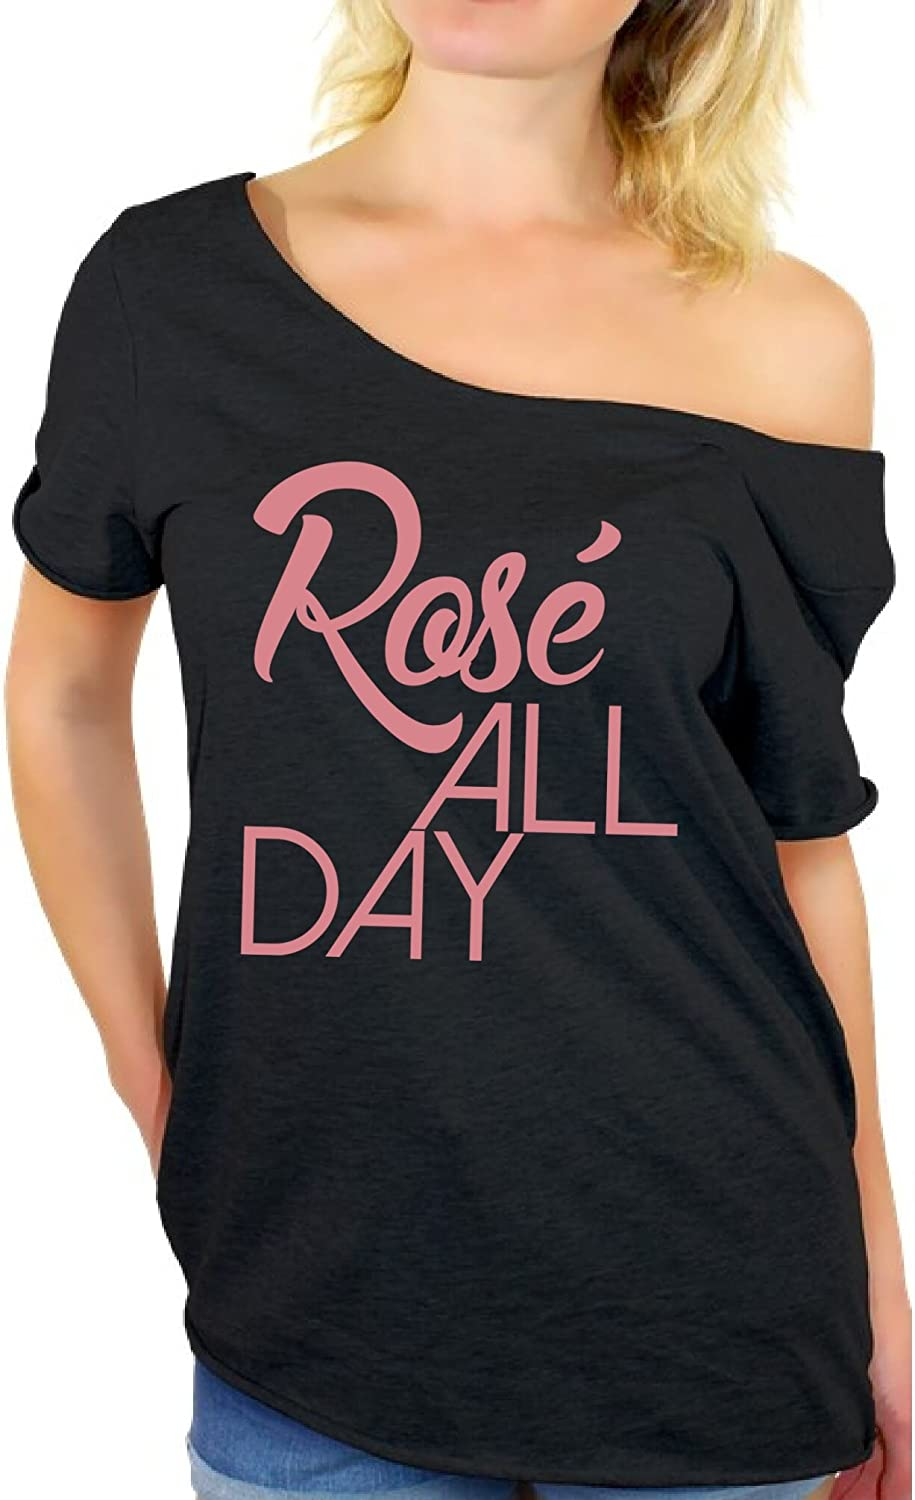 Awkward Styles Women's Rose All Day Relaxed Drinking Off Shoulder Tops T Shirt